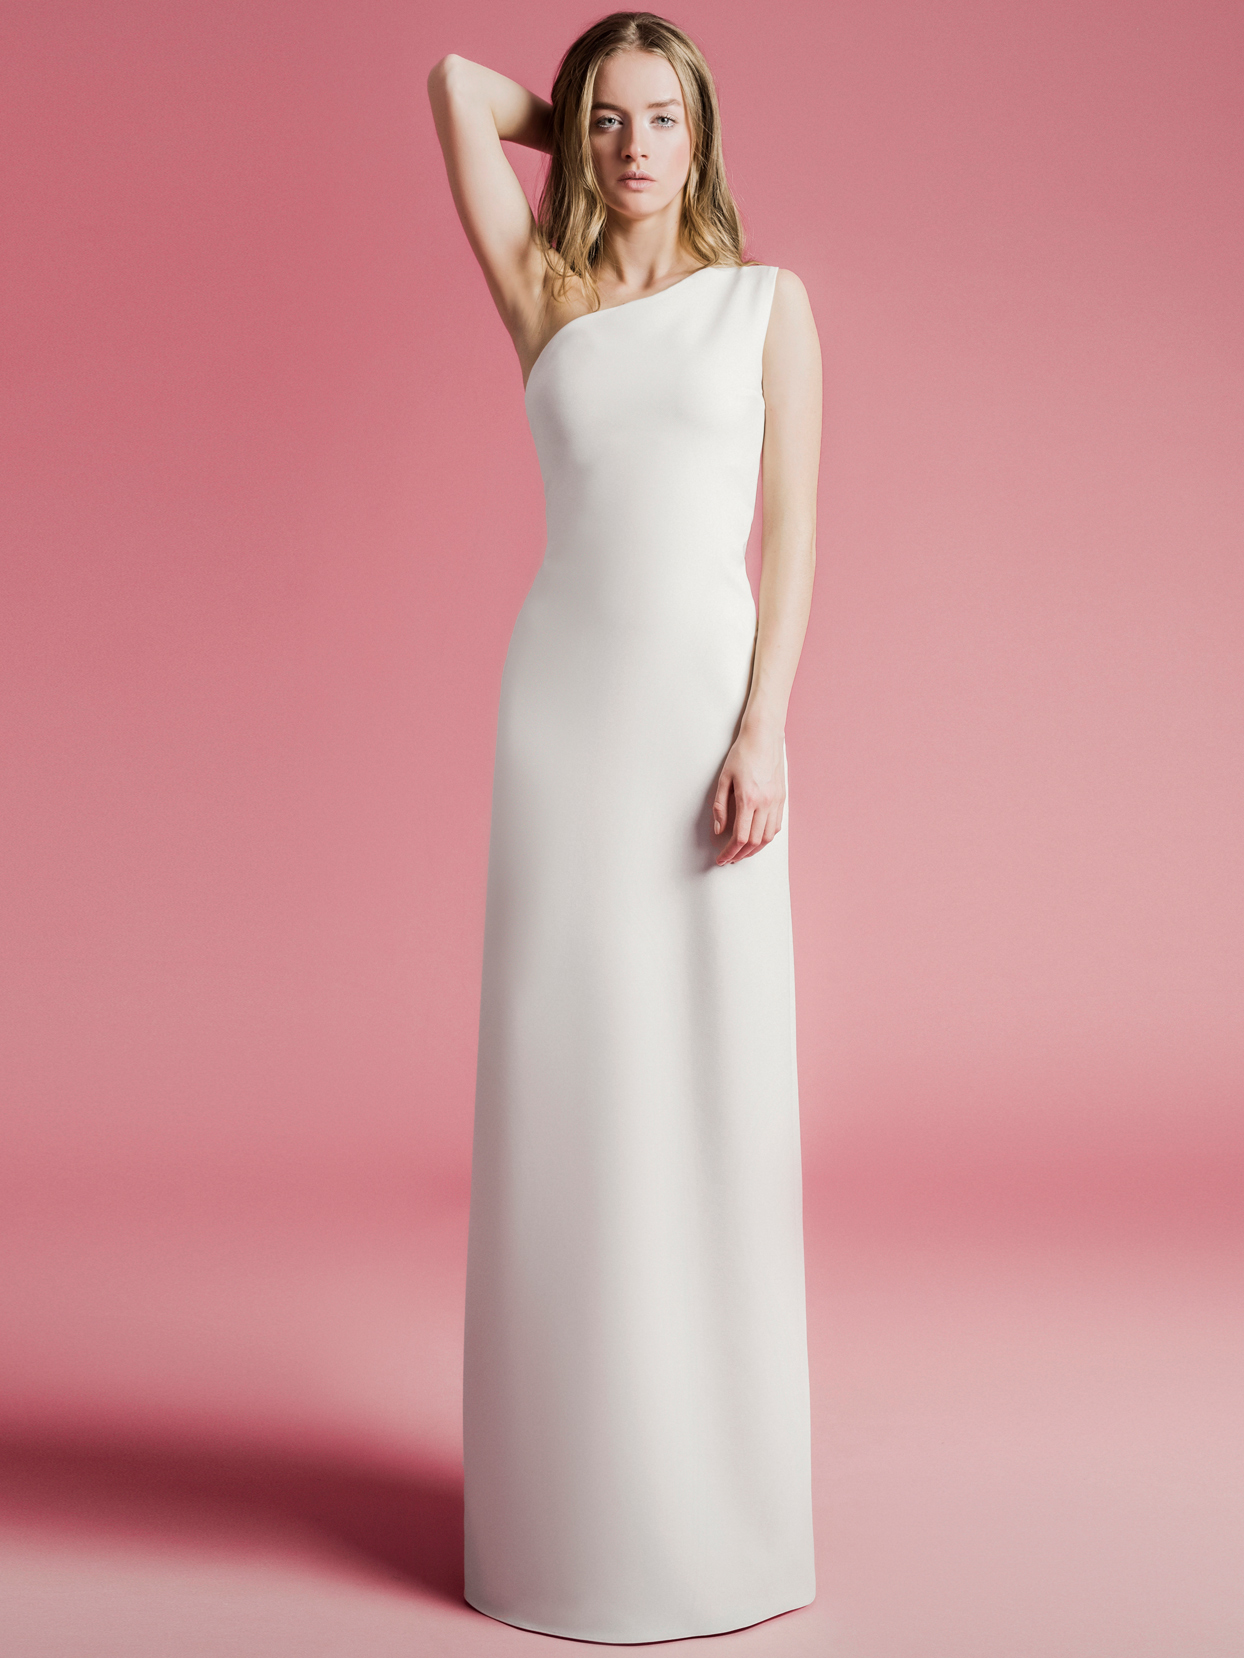 Sophie Et Voilà one shoulder sheath wedding dress spring 2021